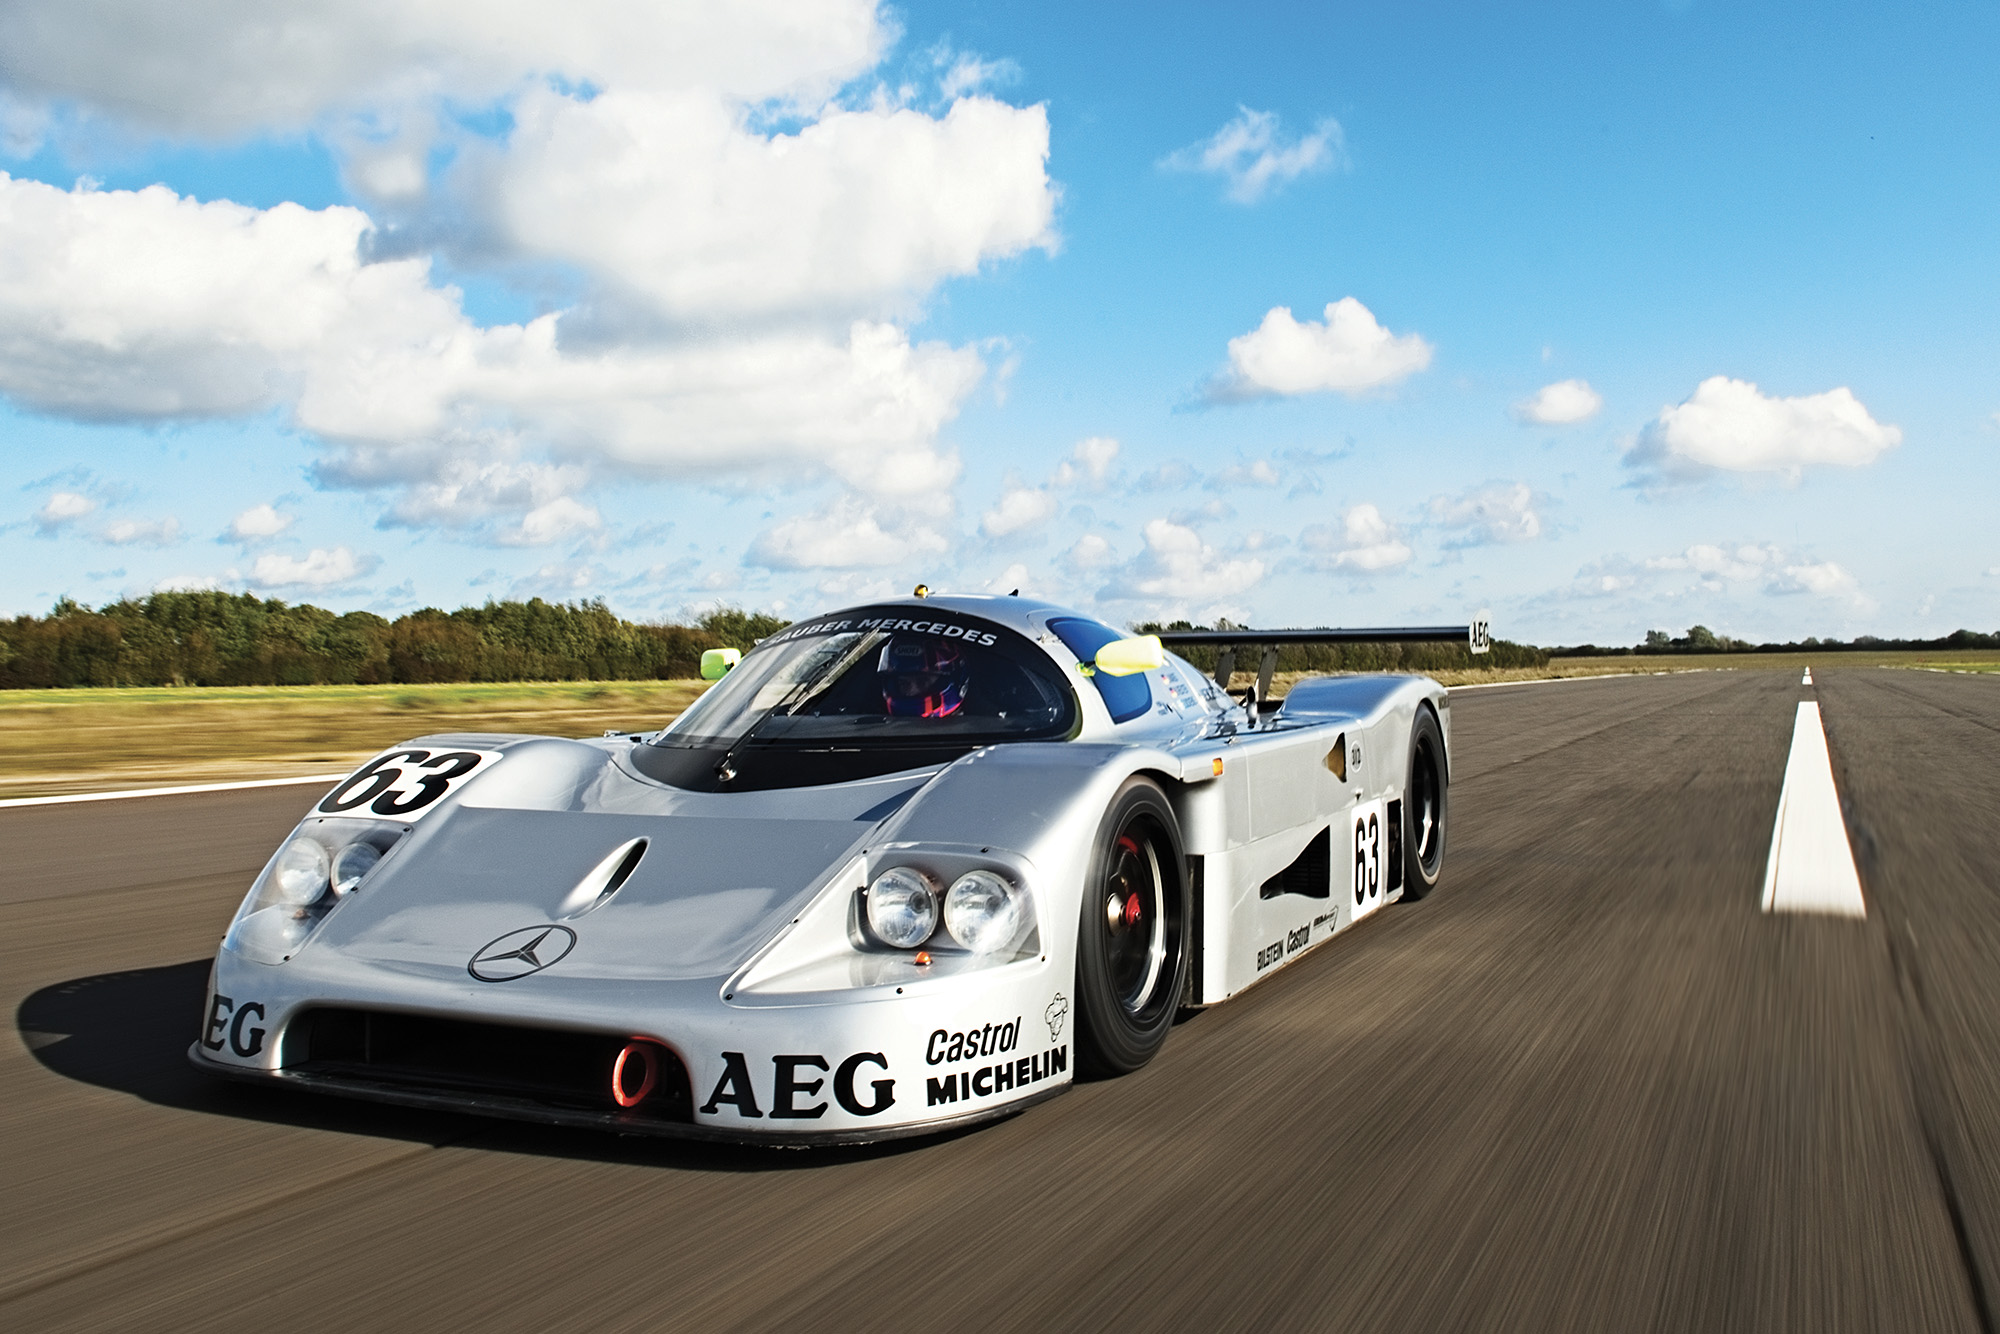 Kenny Acheson driving the Sauber C9